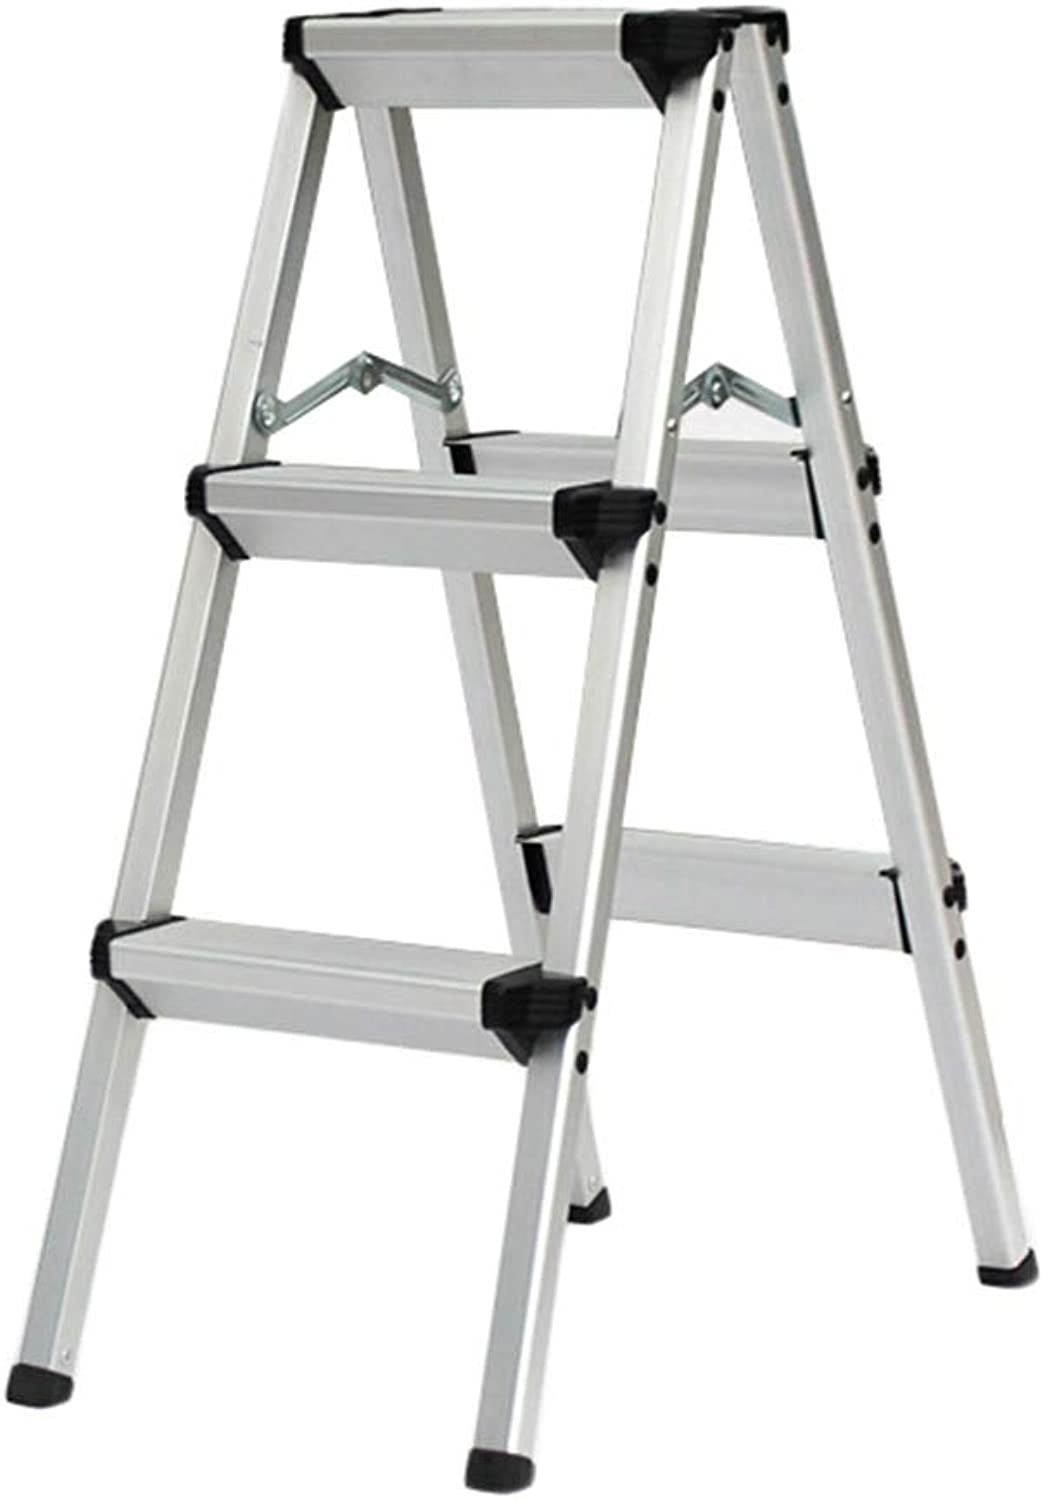 Portable Ladder Stool 3-Step Stools Easy to Store Foldable Design Ideal for Home Kitchen Garage (color   Black, Size   3 Steps)